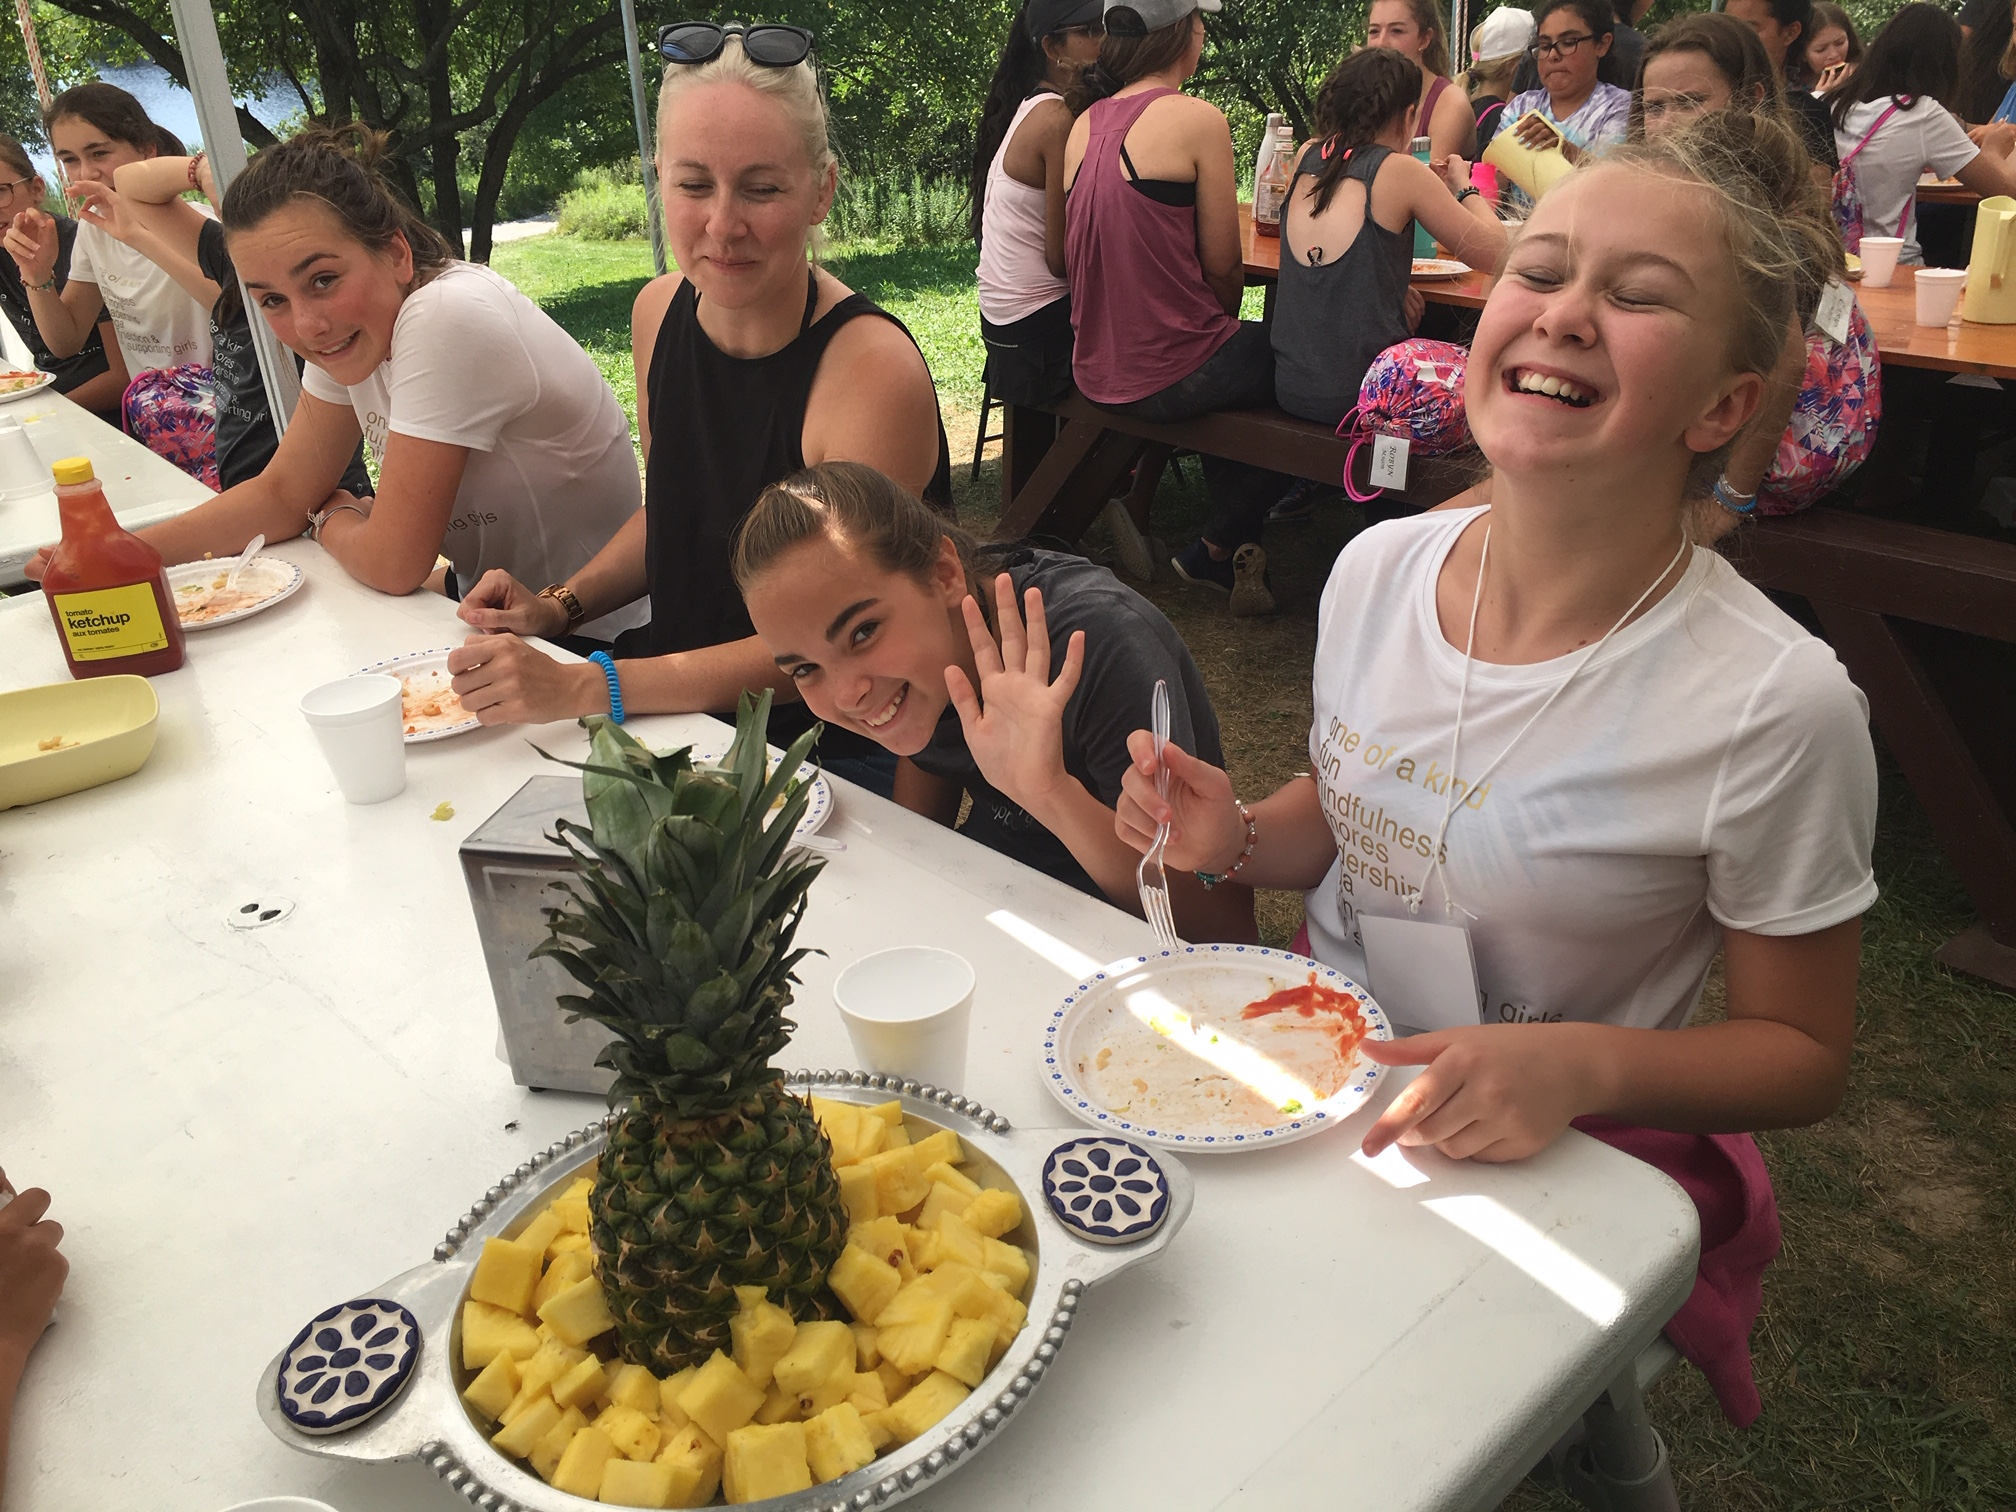 A group of girls eating a healthy pineapple and laughing under the outdoor lunch area at The Hollows Camp